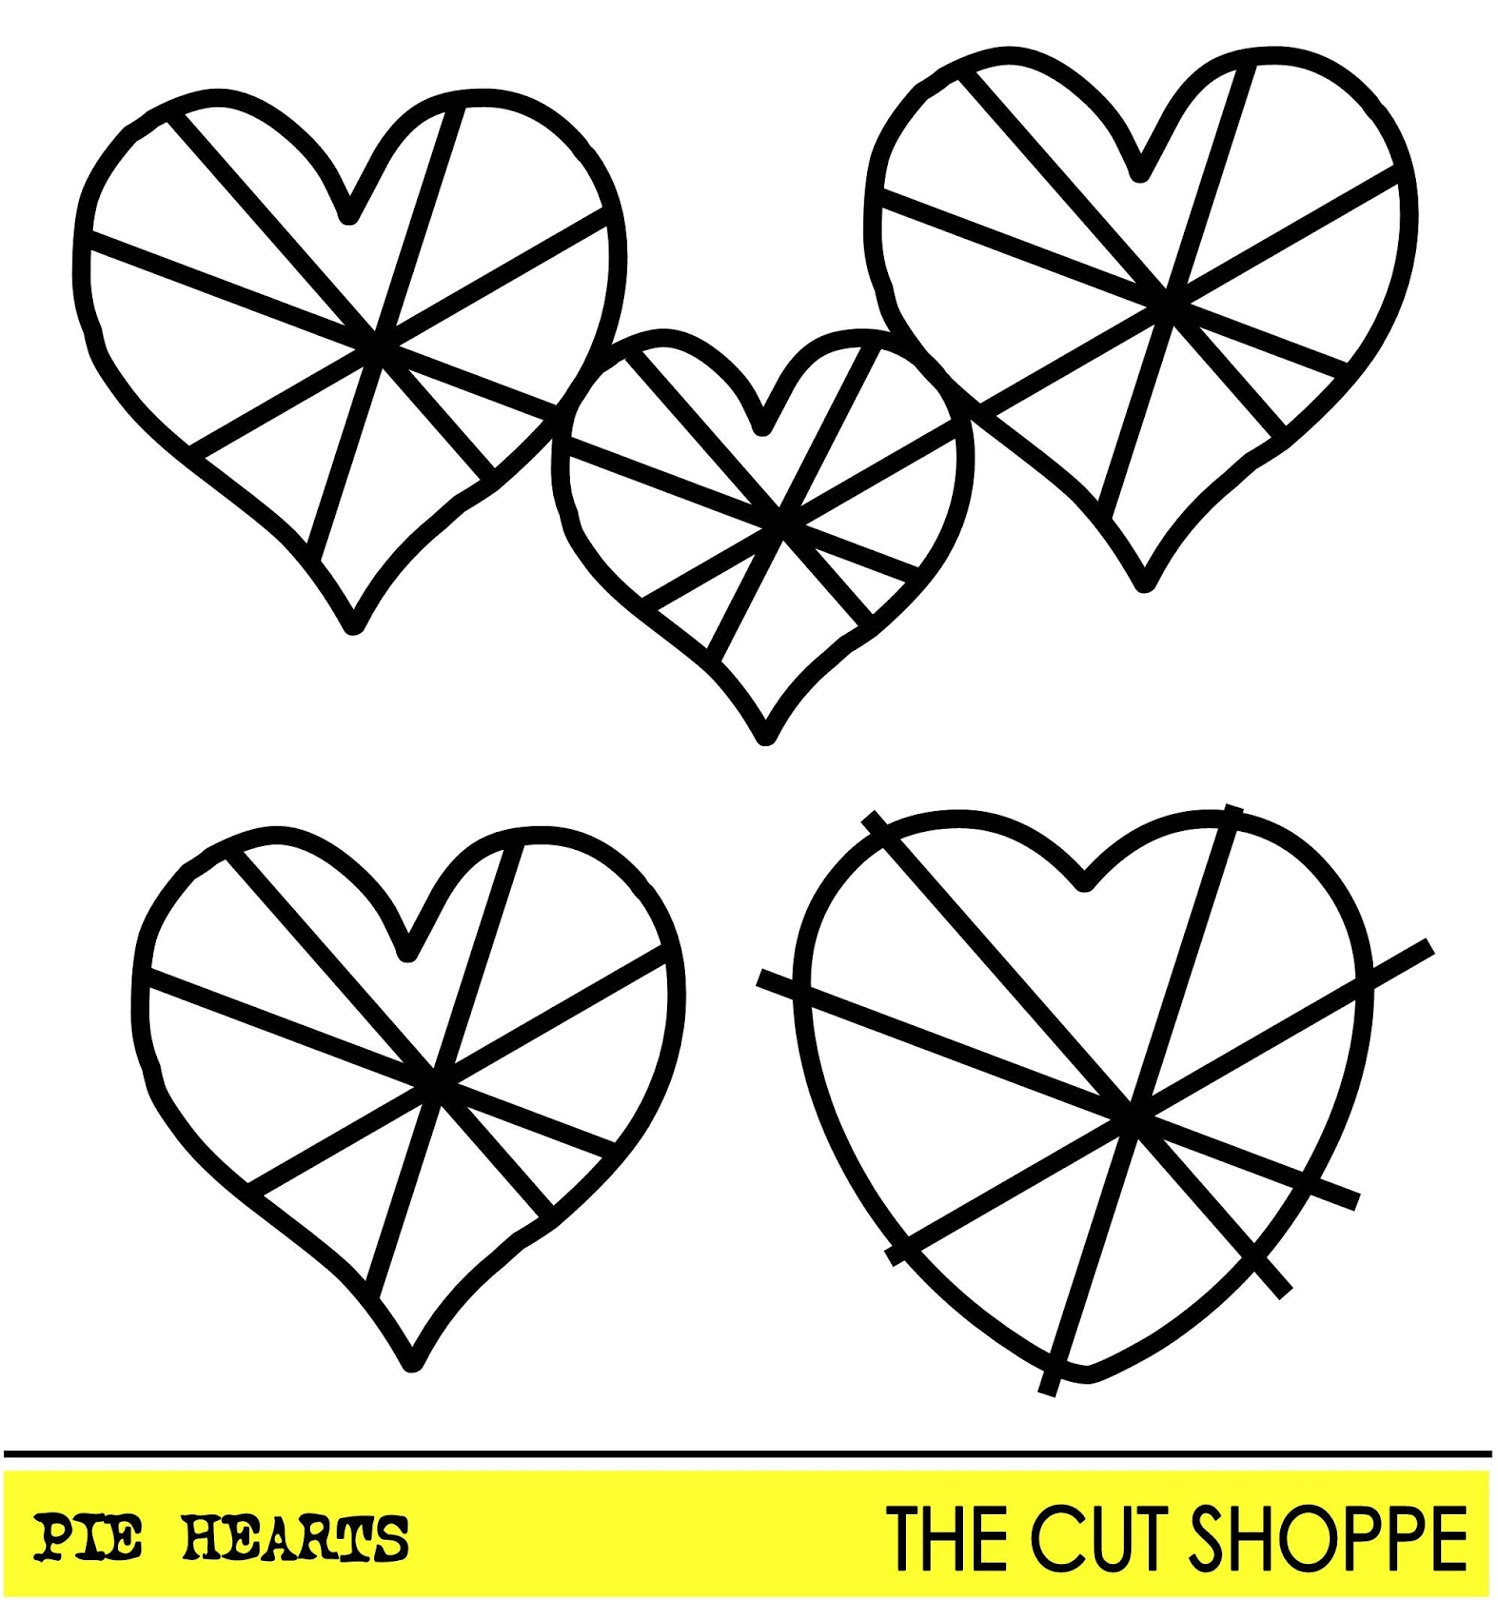 https://www.etsy.com/listing/193530389/the-pie-hearts-cut-file-consists-of?ref=shop_home_active_1